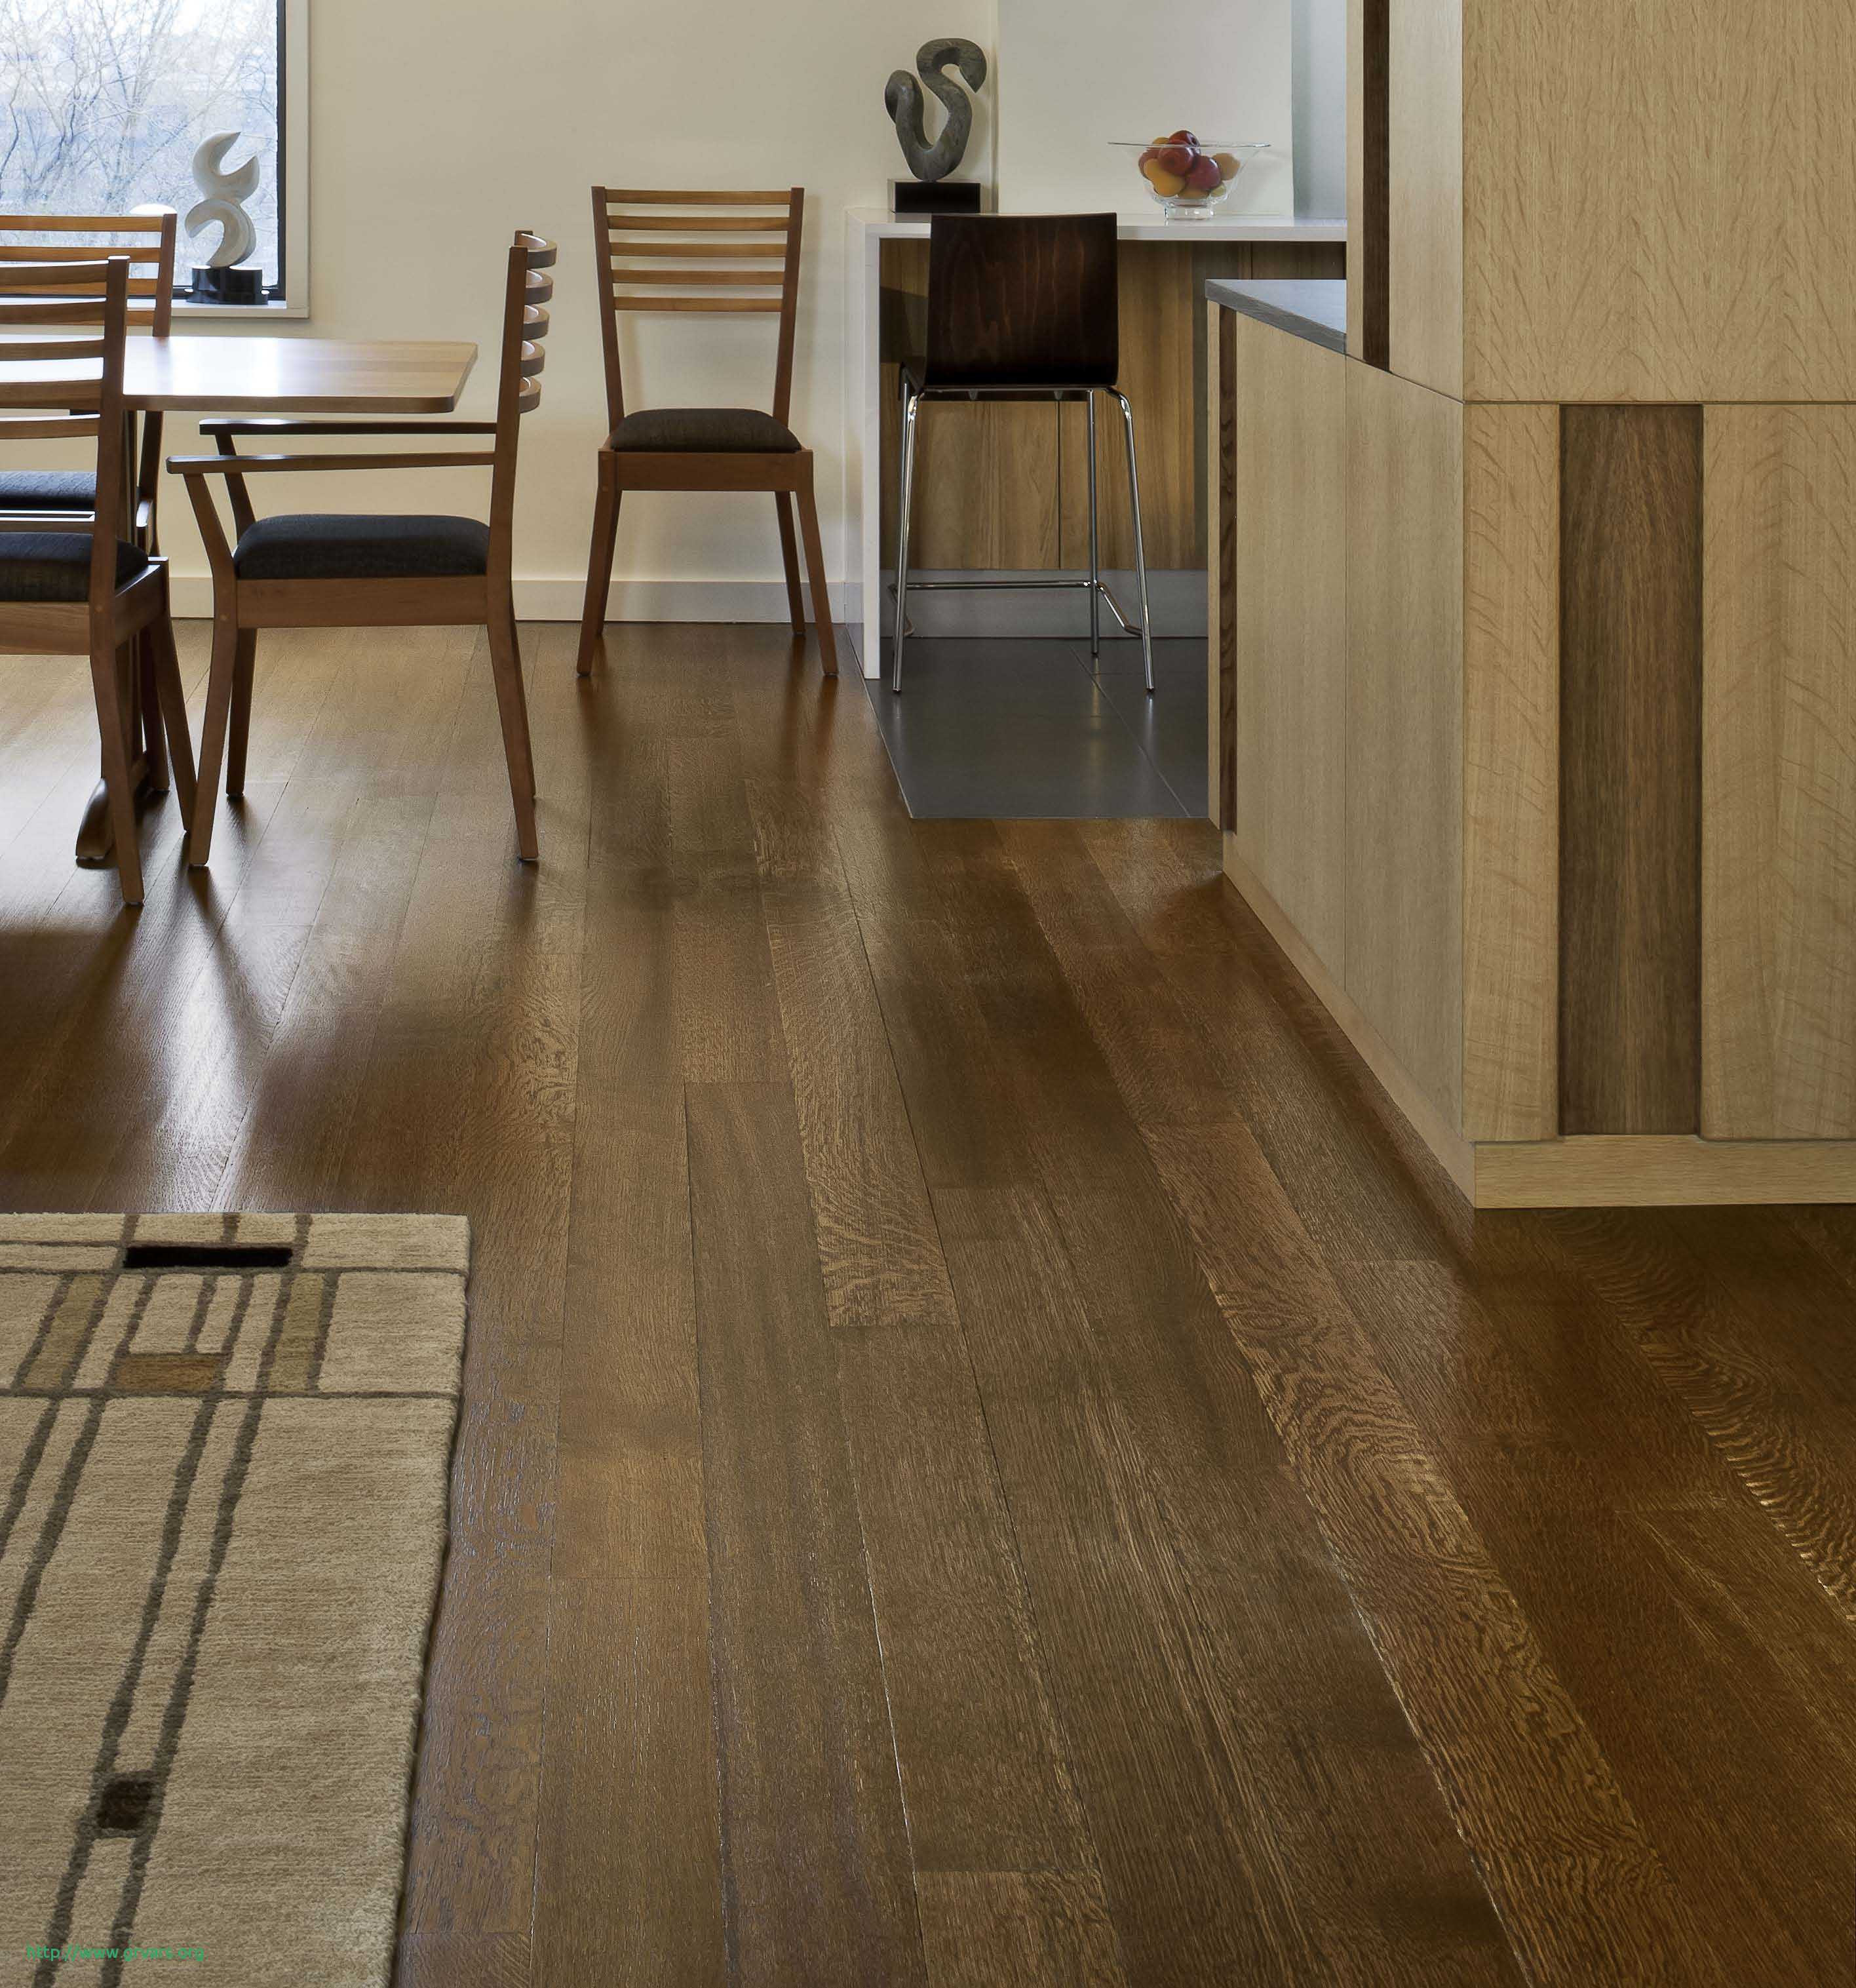 price for sanding hardwood floors of hardwood floor sanders 21 inspirant best prices for laminate wood throughout hardwood floor sanders 21 inspirant best prices for laminate wood flooring